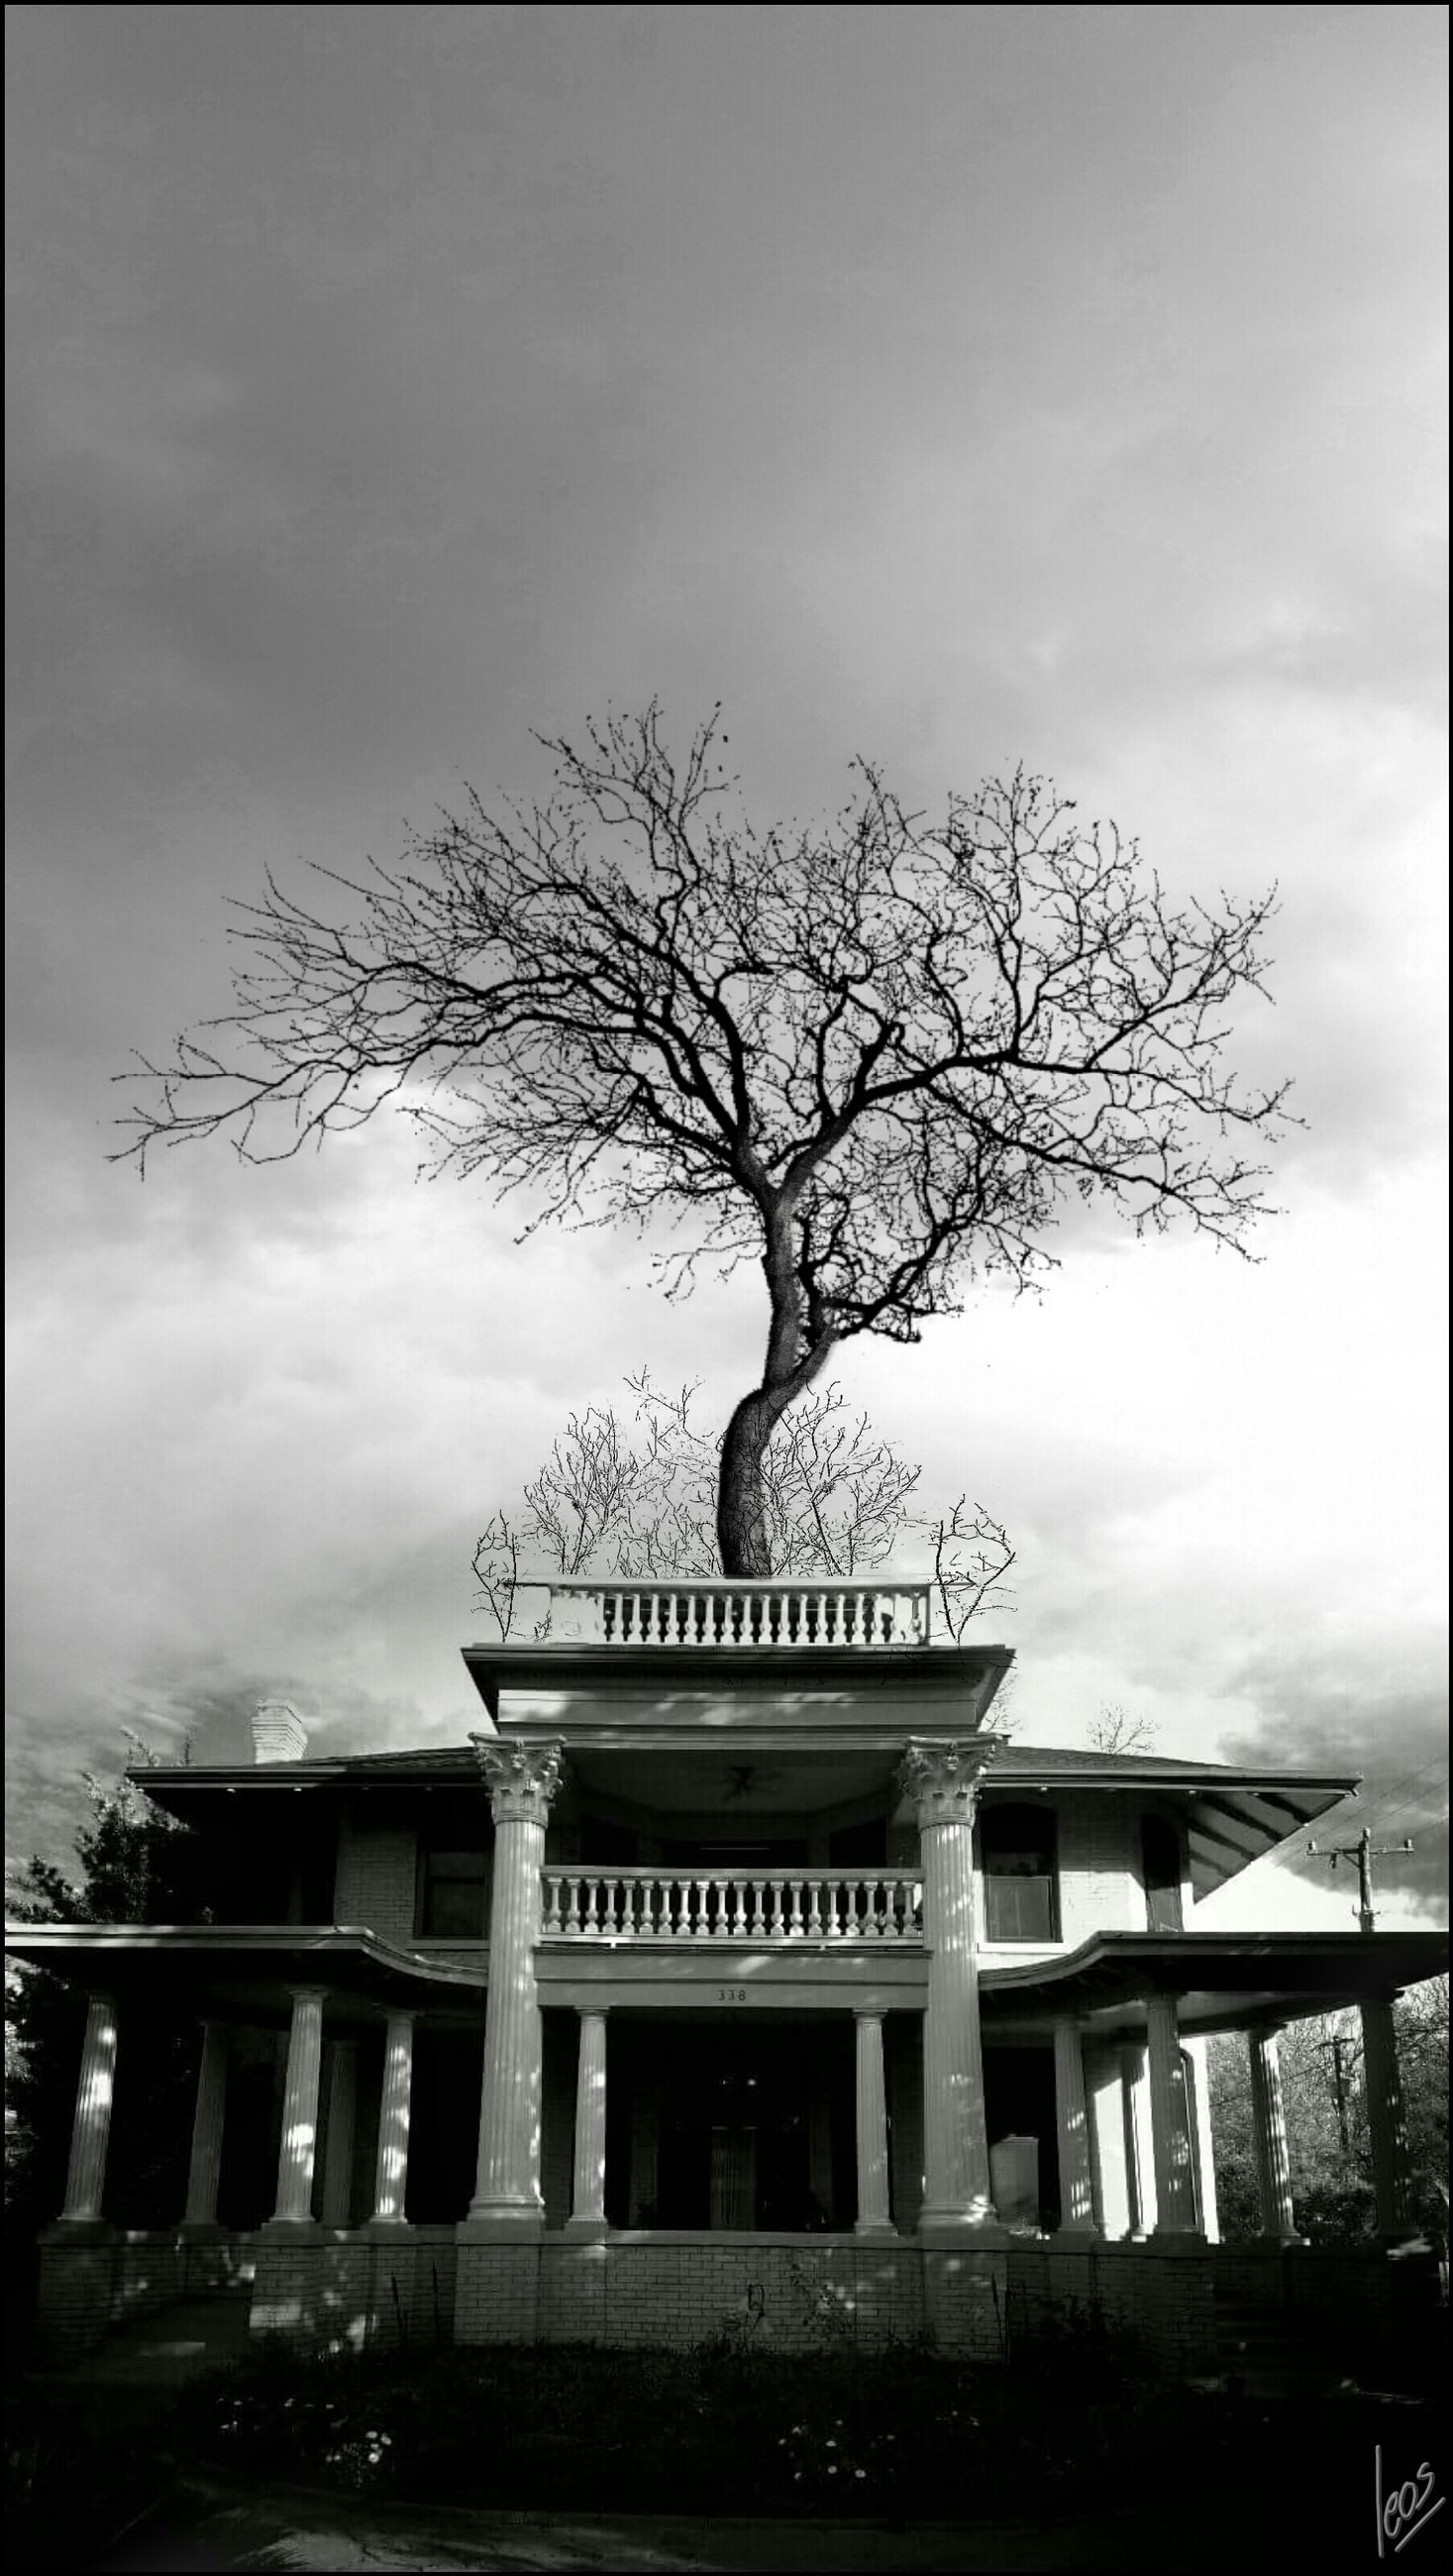 architecture, built structure, sky, bare tree, cloud - sky, building exterior, tree, cloudy, low angle view, bridge - man made structure, overcast, connection, cloud, weather, railing, branch, bridge, day, outdoors, nature